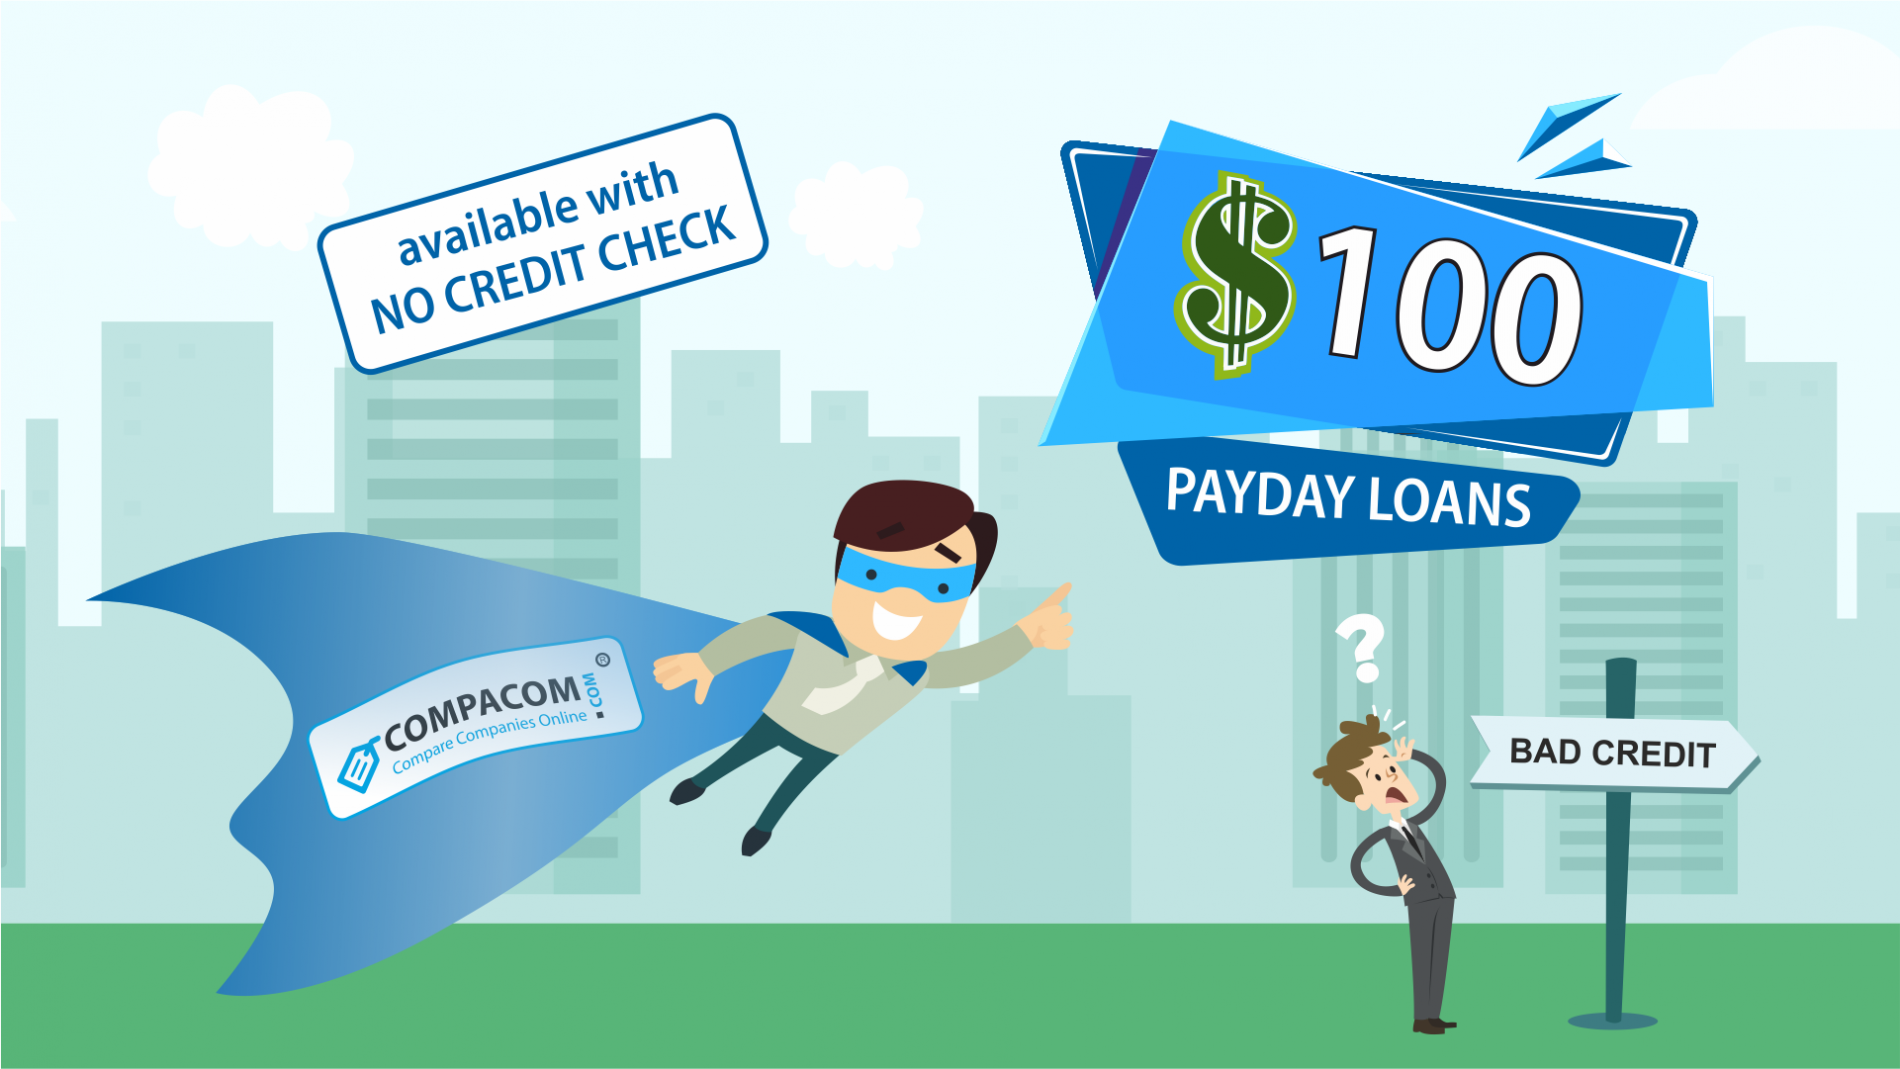 Apply for a $100 Payday loan or compare lenders' offers online